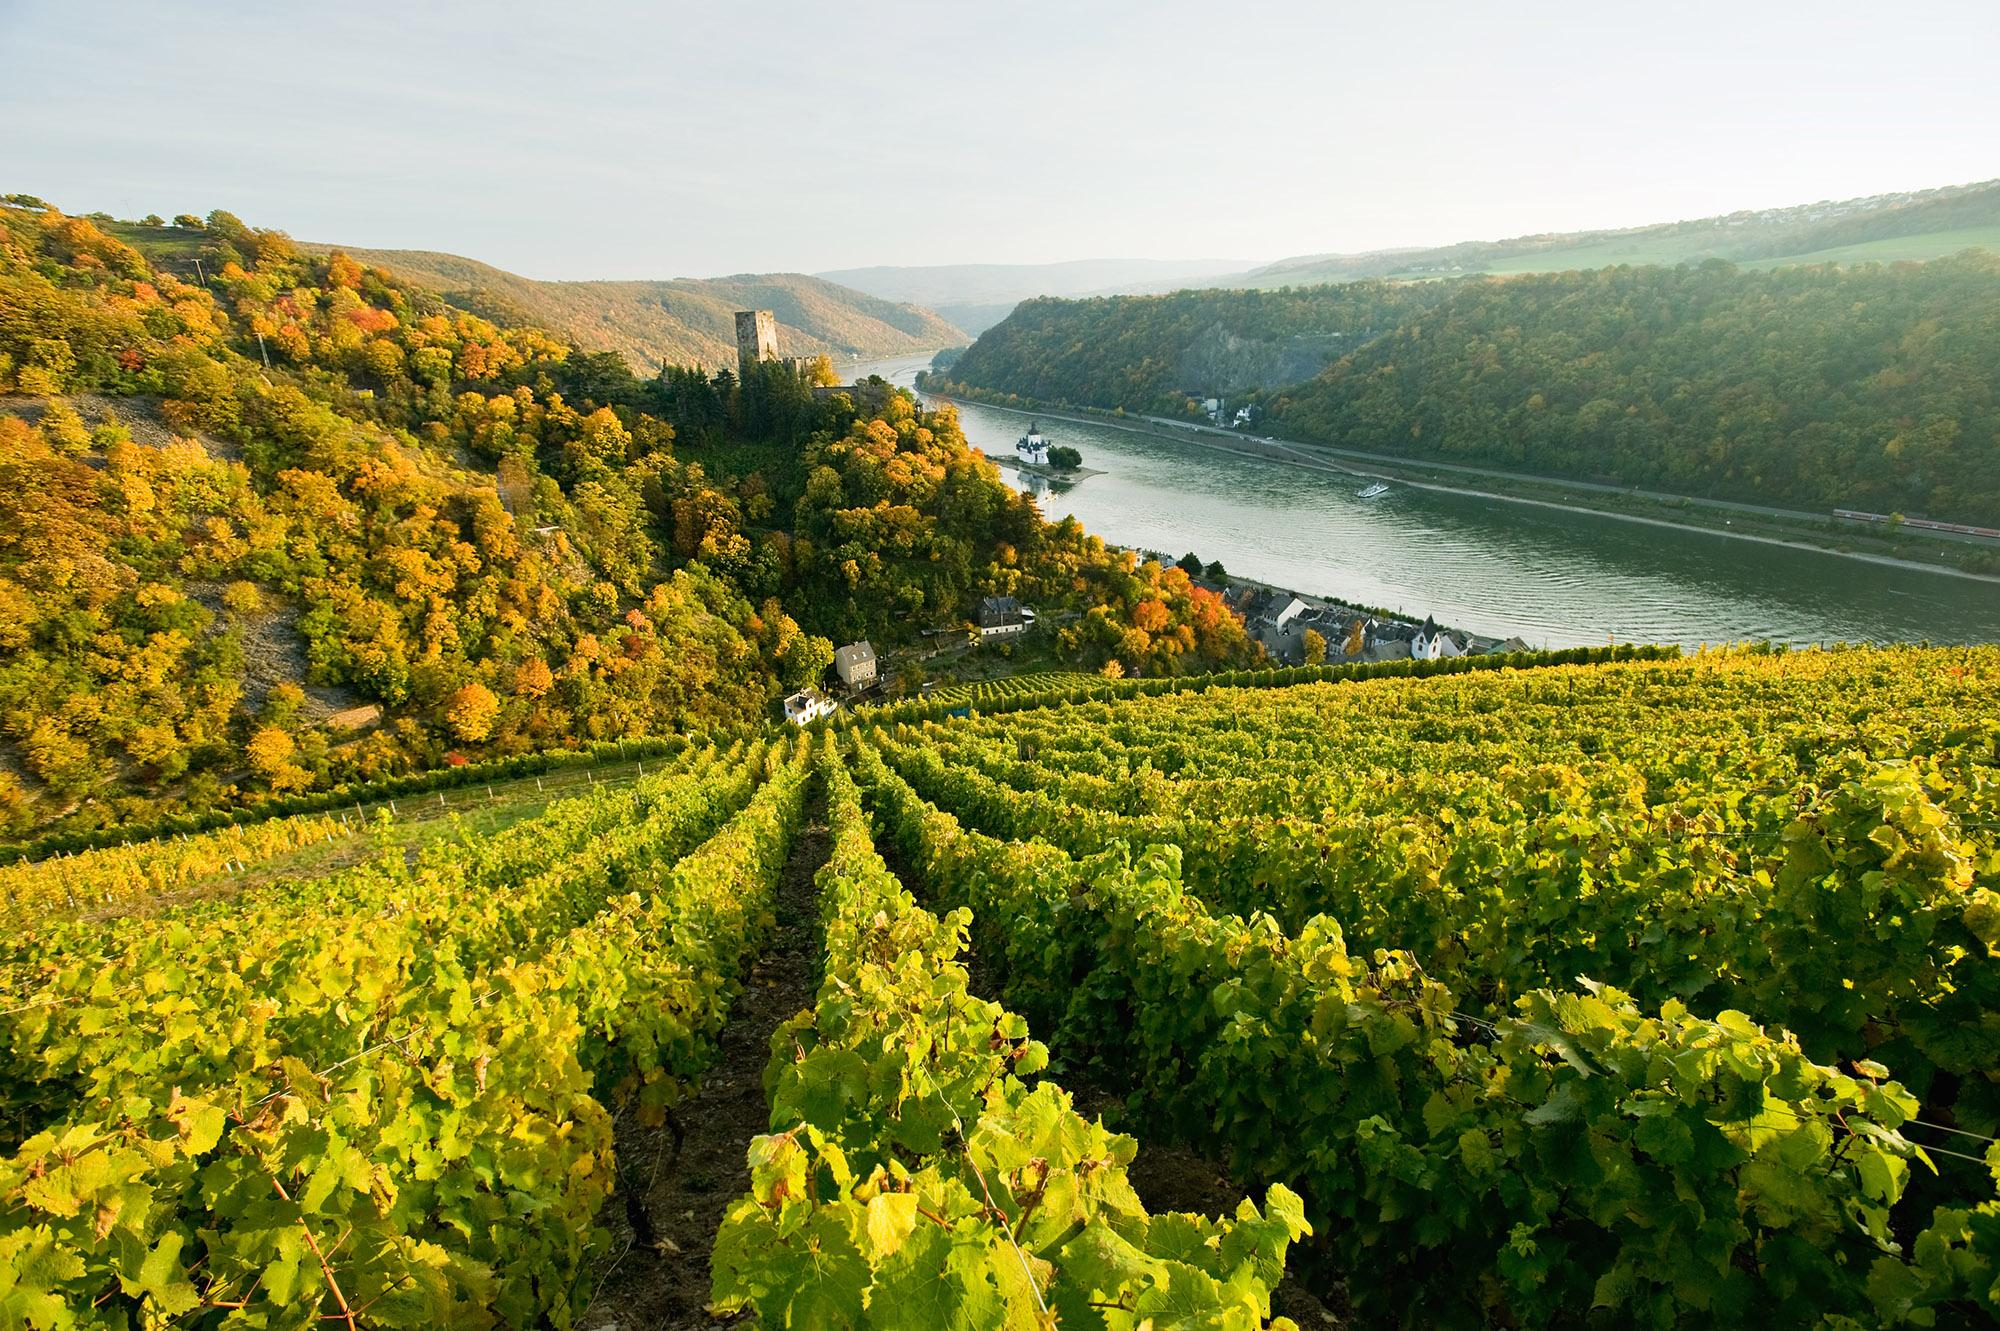 Elegant Riesling wines are treasured all over the world. Pictured: vineyards at Kaub am Rhein. – © Dominique Ketz / Romantischer Rhein Tourismus GmbH